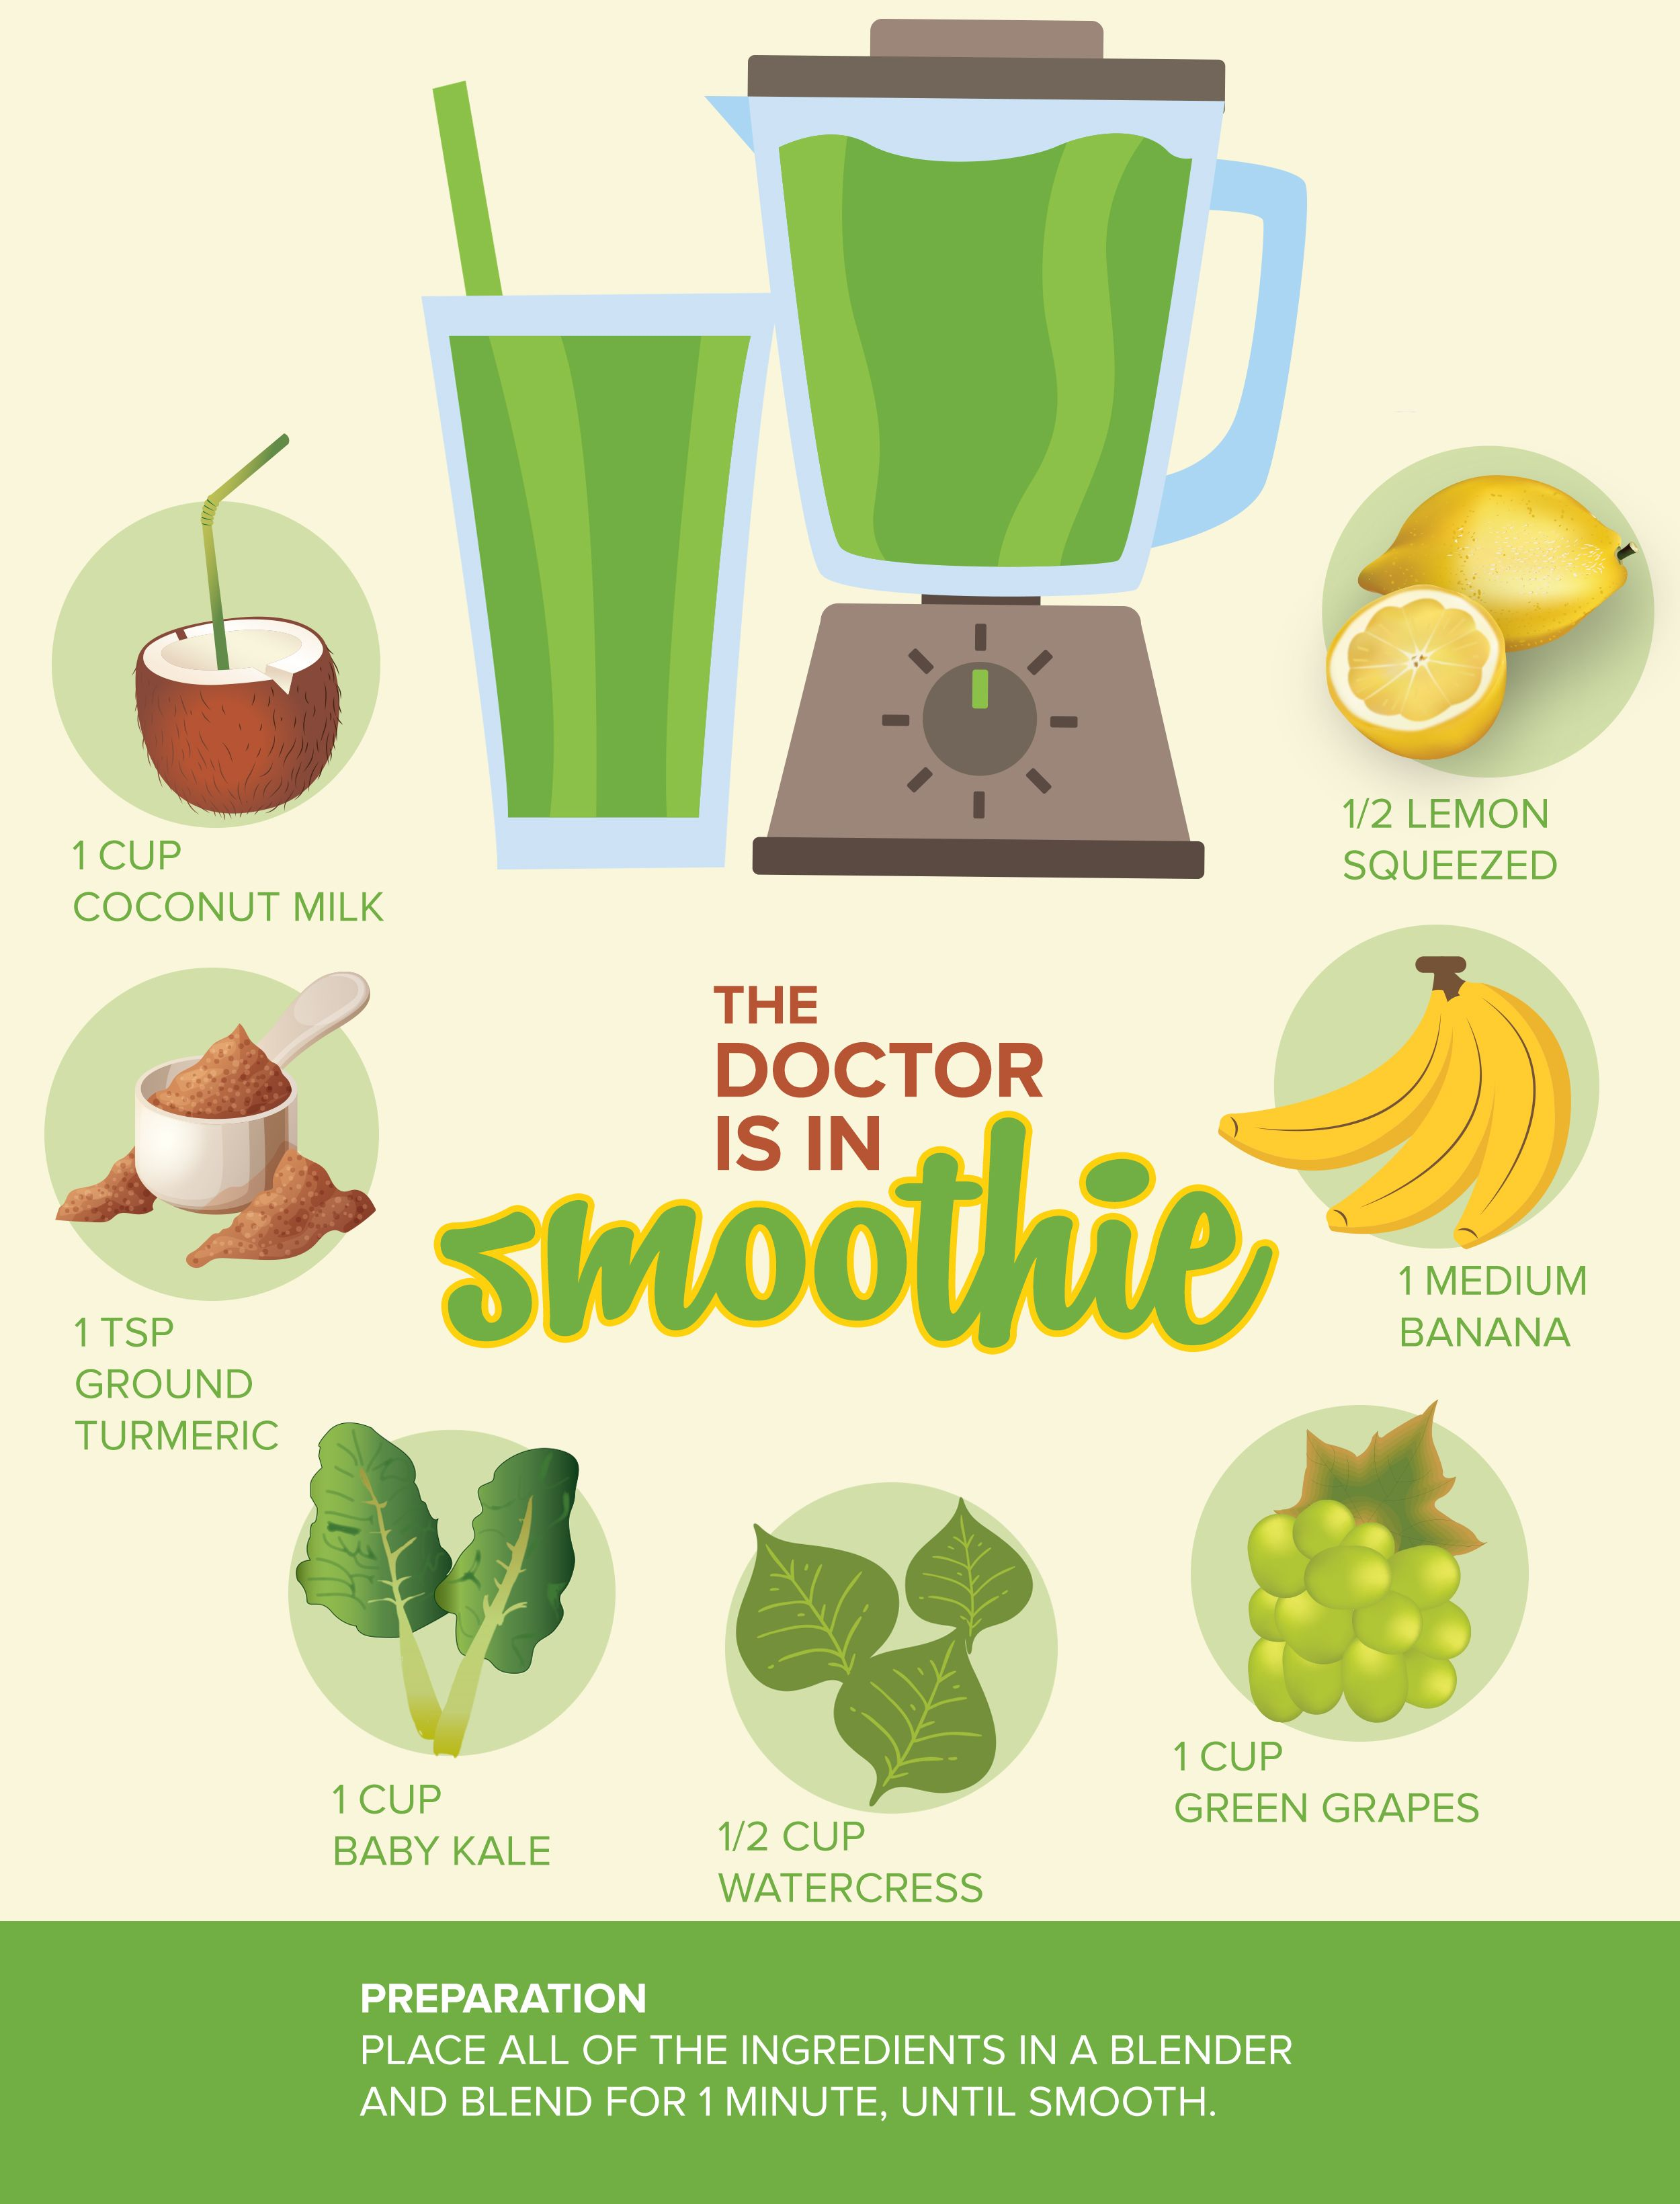 Need to detox? Try these 3 healthy smoothie recipes to help you reset